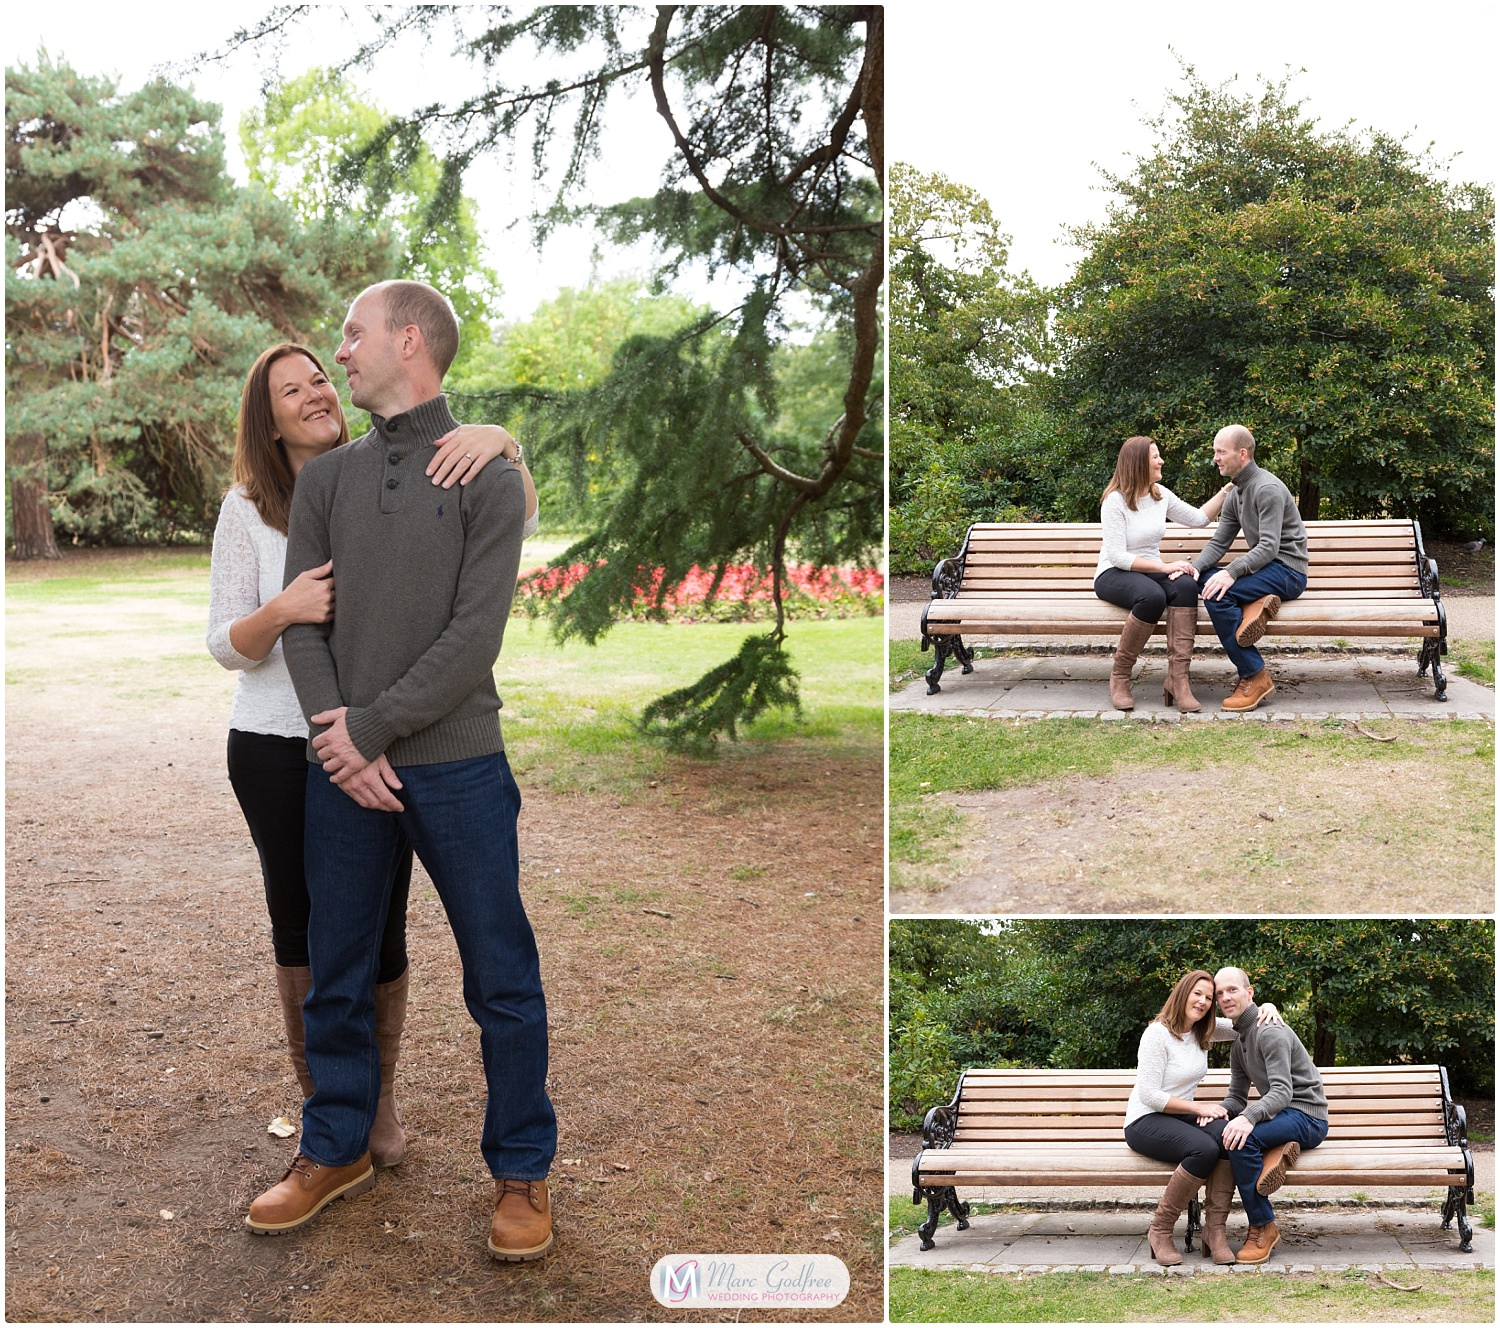 Emma & Darrens Greenwich Park Pre-Wedding Session-3